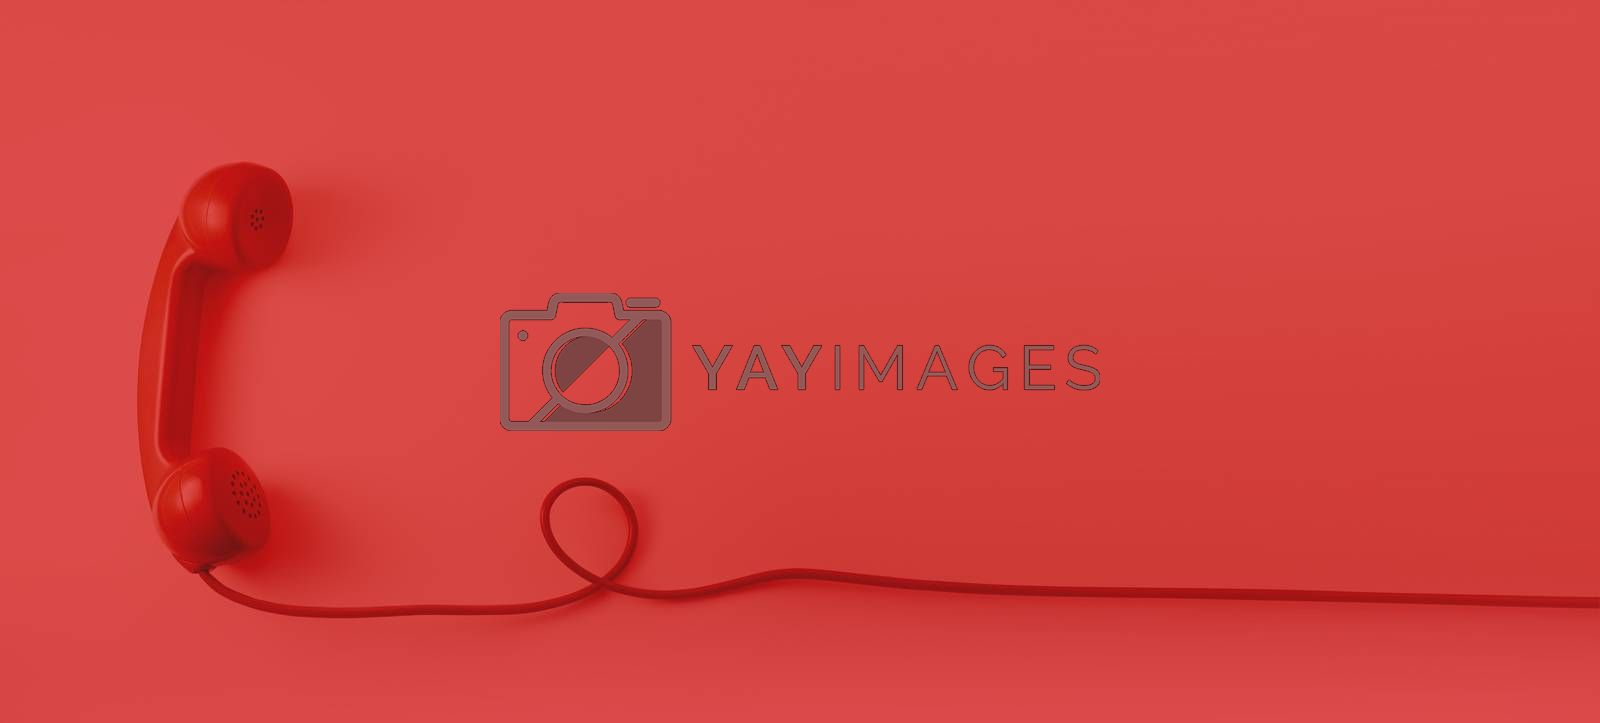 A red vintage dial telephone handset with red background.